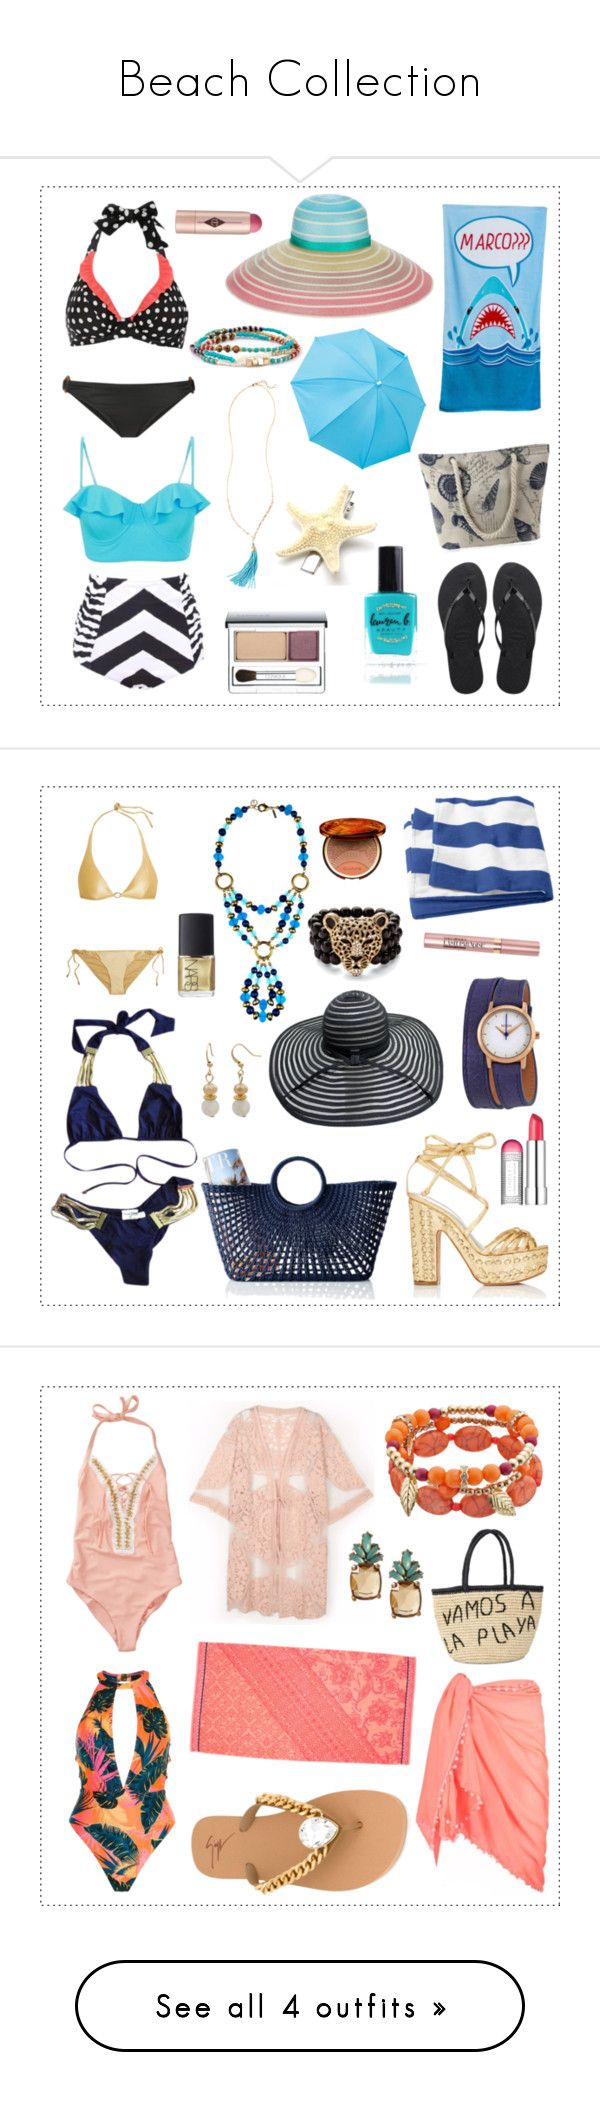 """""""Beach Collection"""" by divinatas ❤ liked on Polyvore featuring Malia Mills, Havaianas, Missoni, Lilly Pulitzer, Lauren B. Beauty, Clinique, Charlotte Tilbury, Beach Bunny, Alchimia Di Ballin and Mark & Graham"""